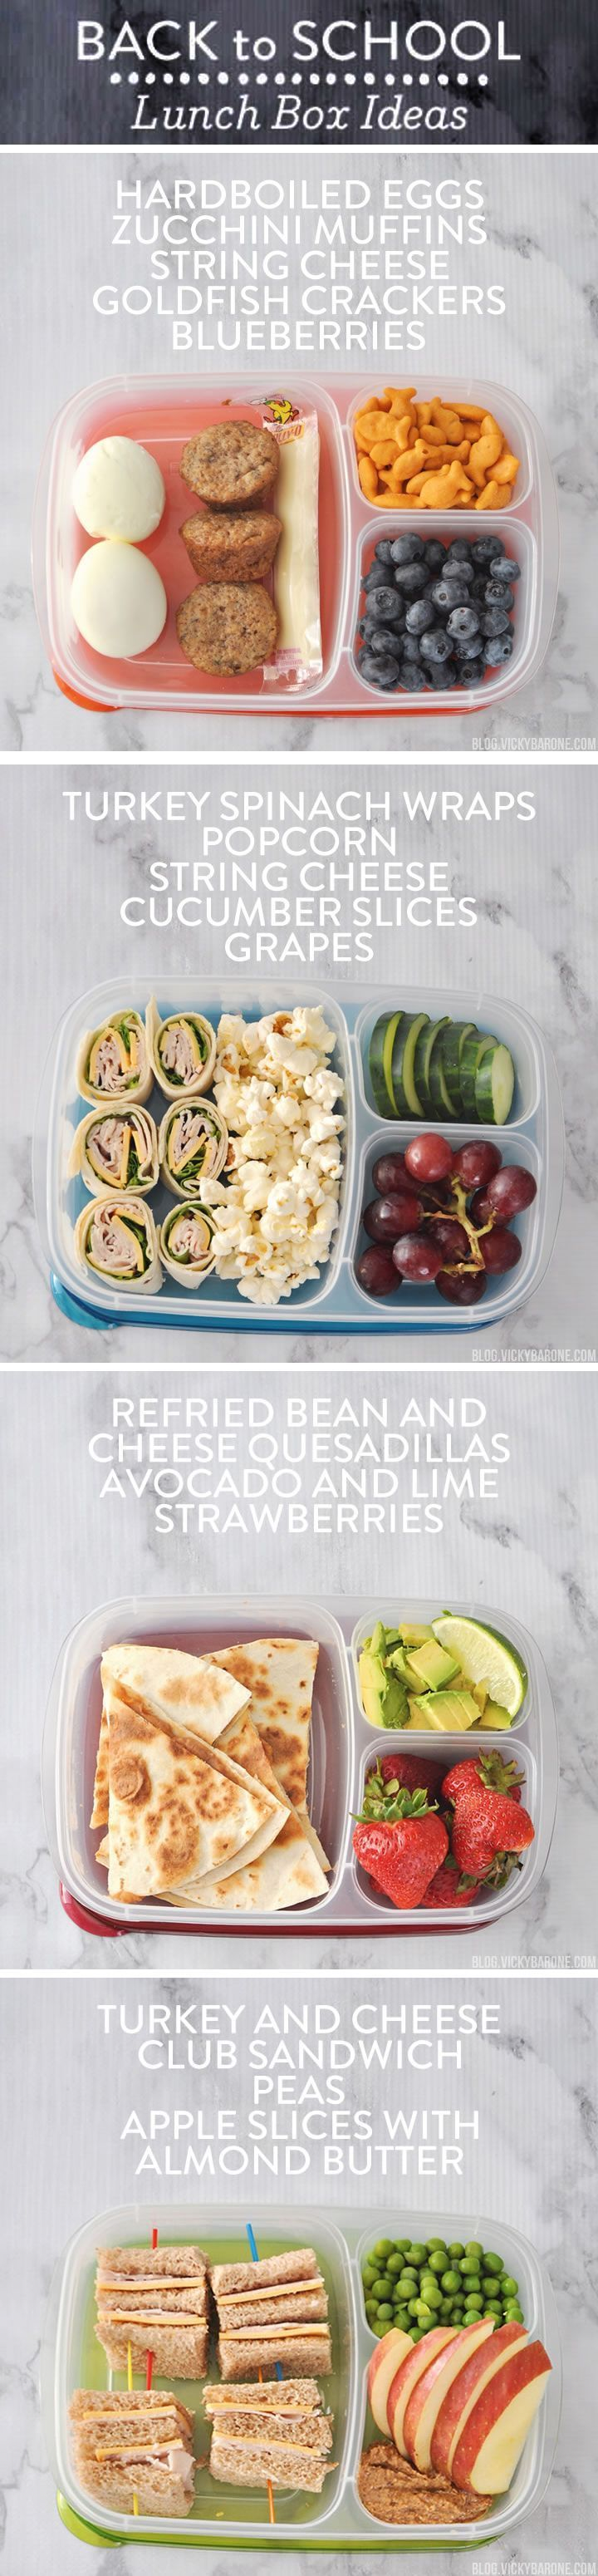 780 best lunch box ideas images on pinterest healthy treats baby back to school lunch box ideas forumfinder